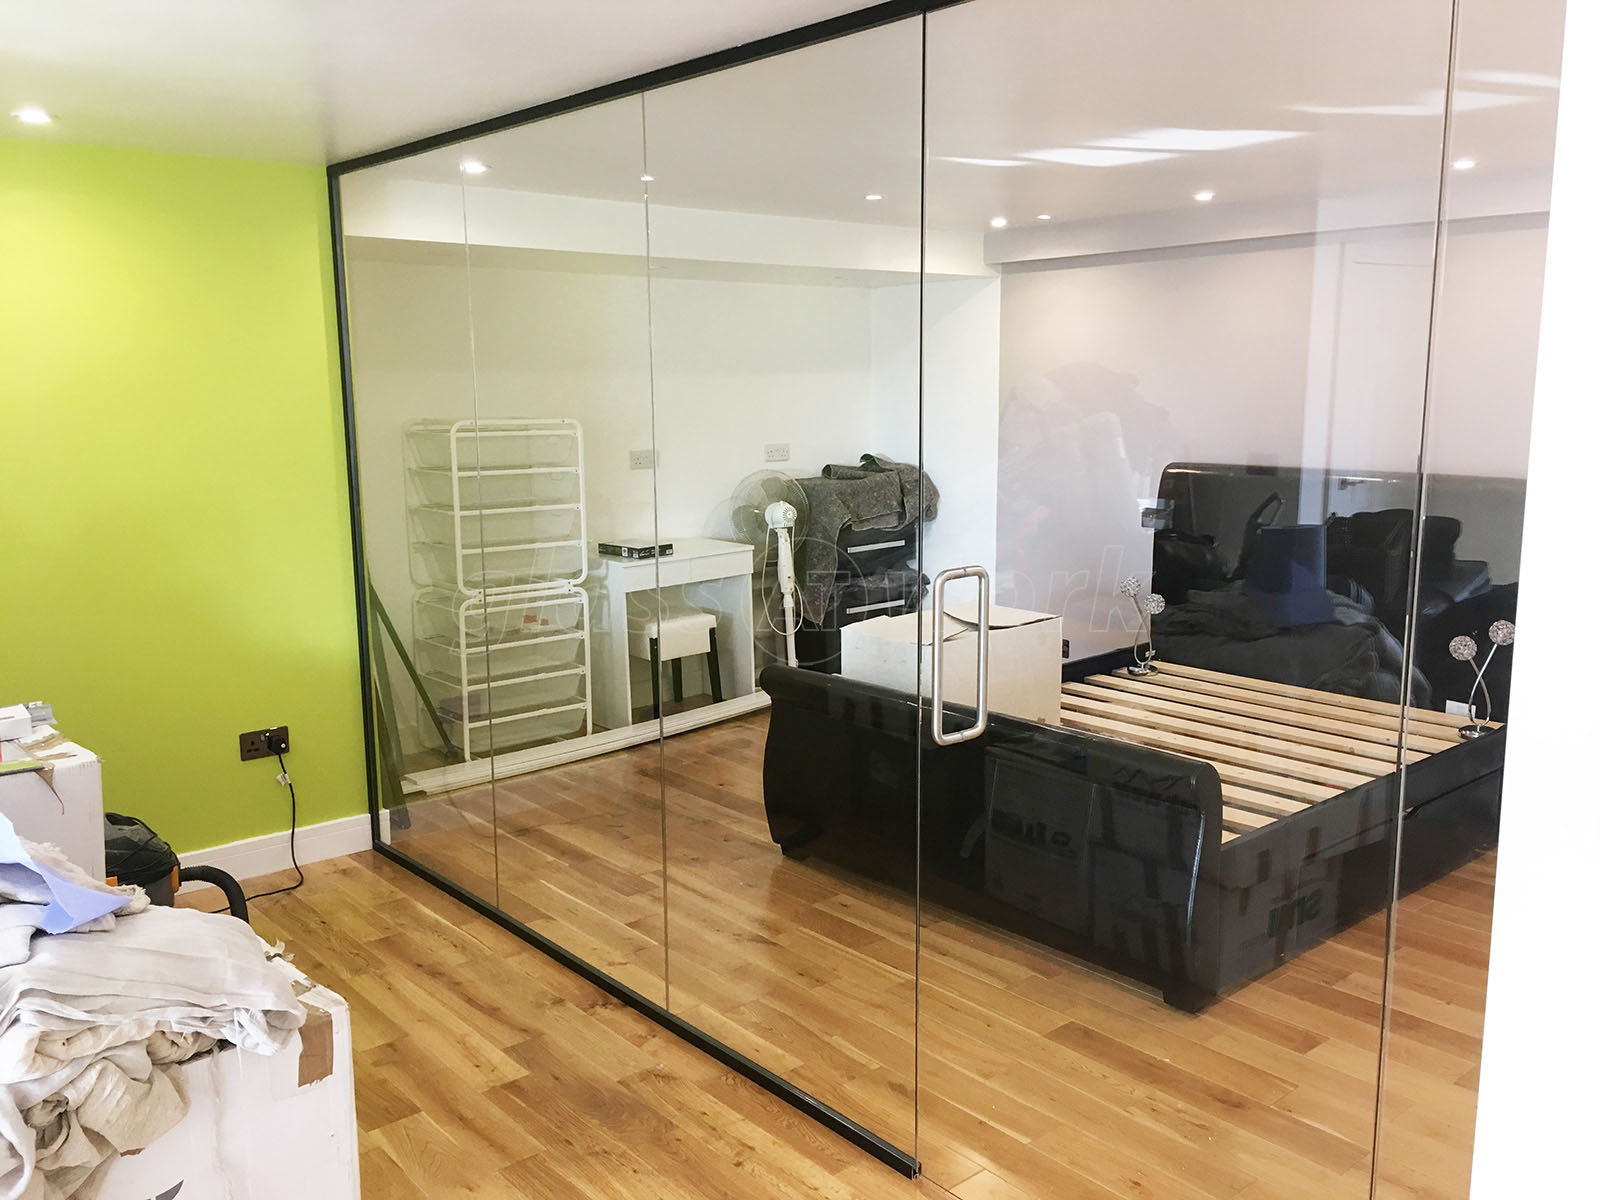 Partitioned Bedroom Glass Partitioning At Domestic Property Newhaven East